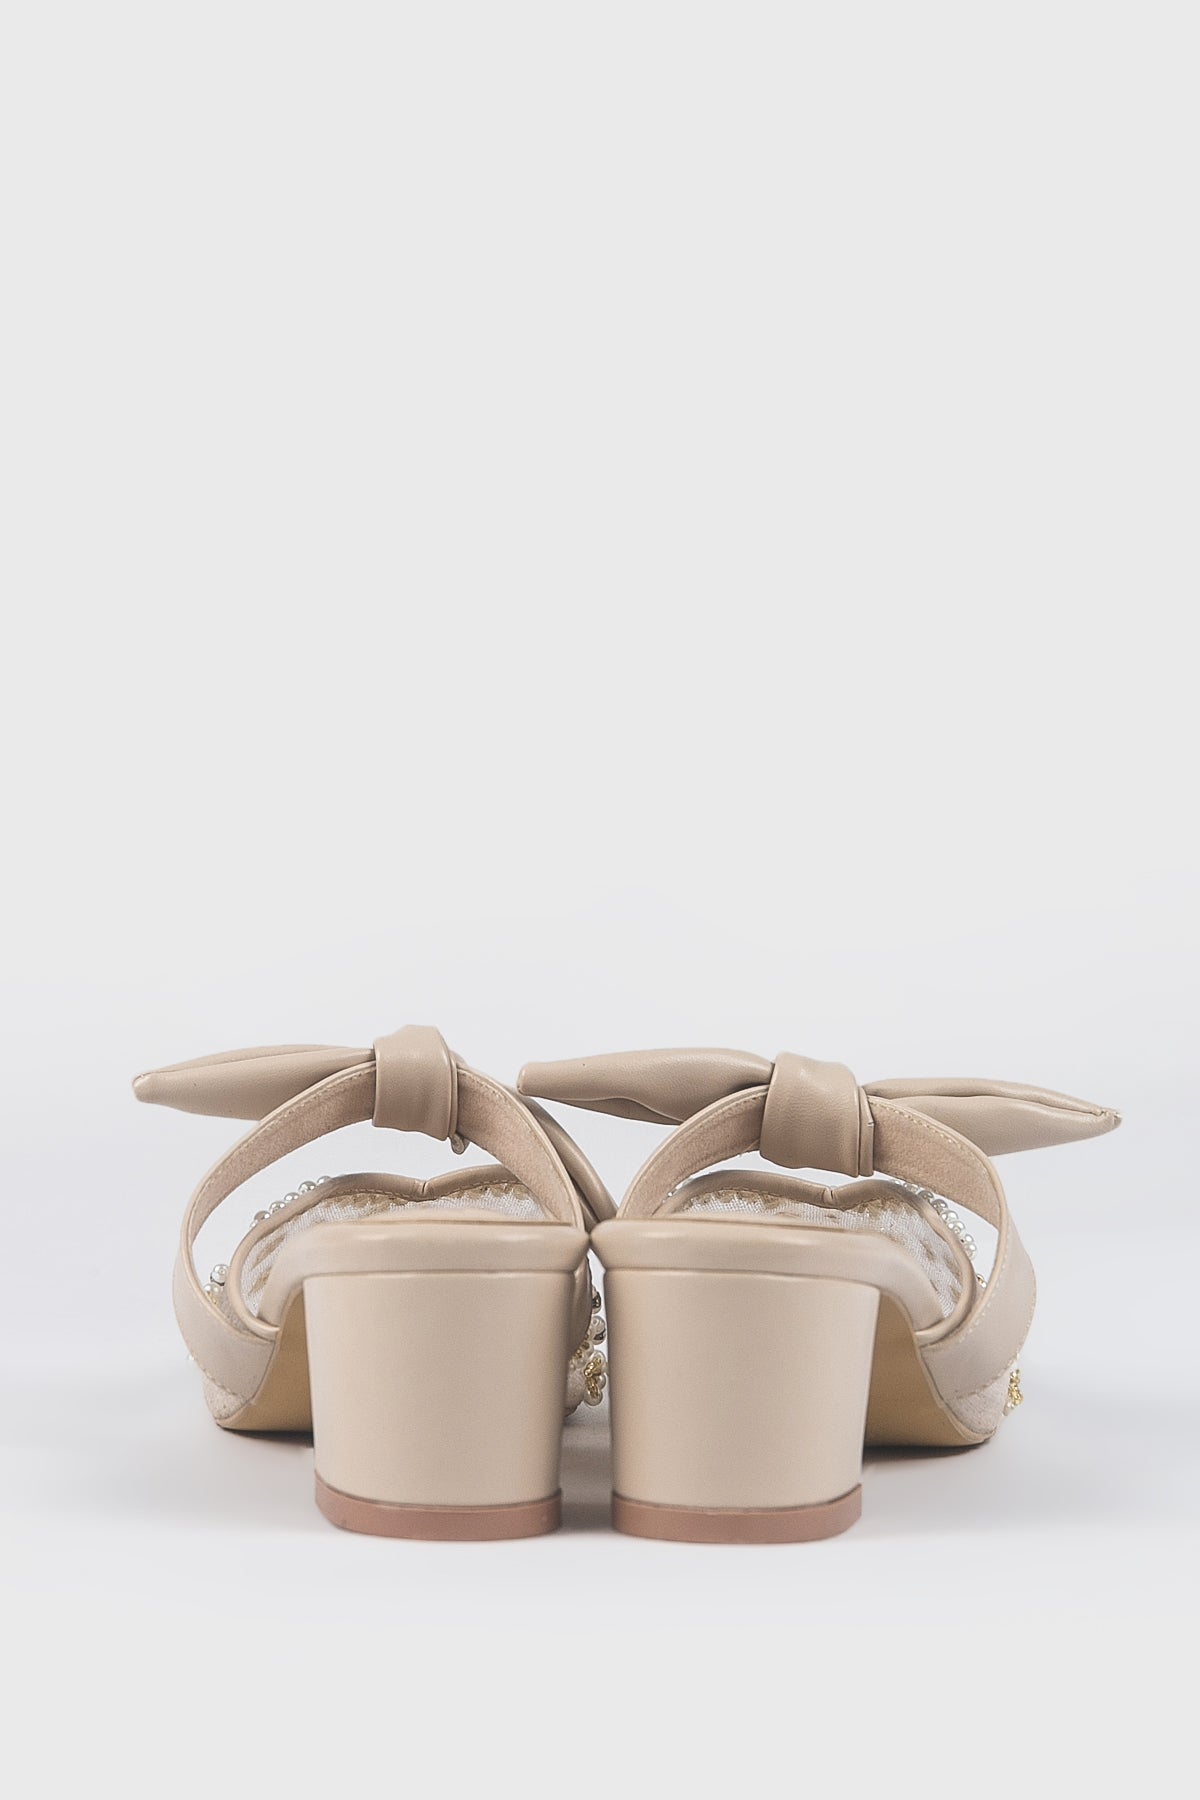 First Love Shoes in Nude